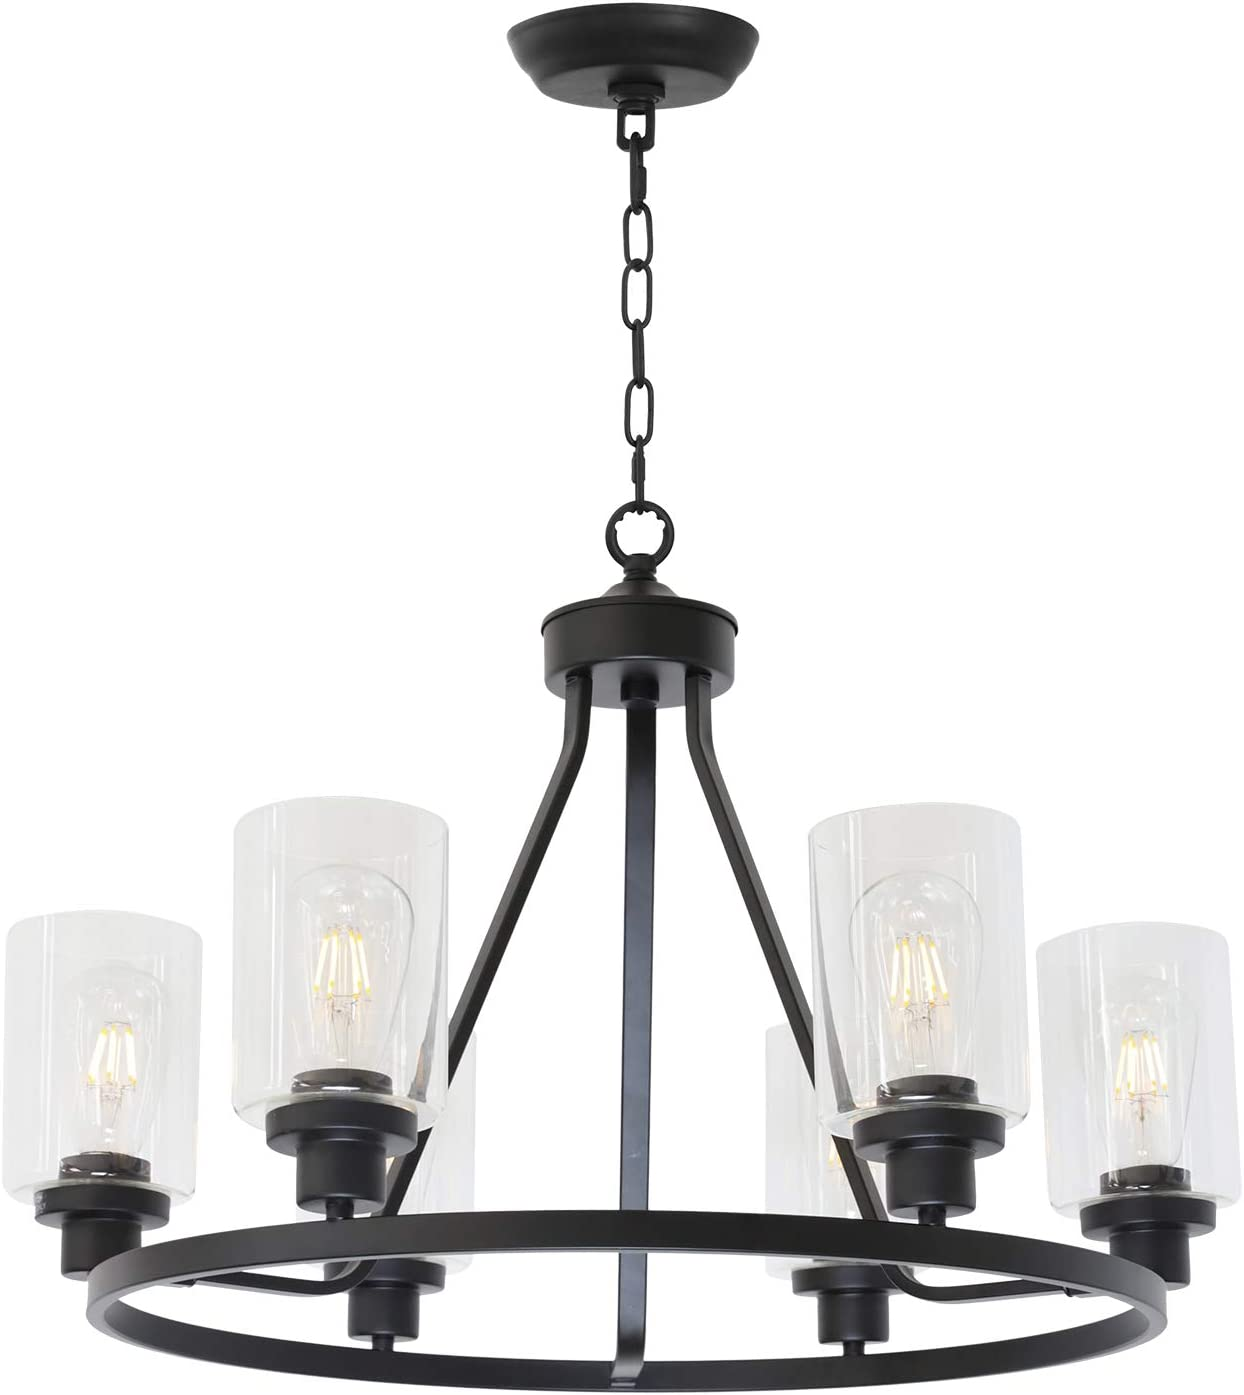 MELUCEE 6-Light Chandeliers for Dining Room, Farmhouse Lighting Black Light Fixtures Ceiling Hanging Industrial Pendant Light for Kitchen Island Bedroom Living Room